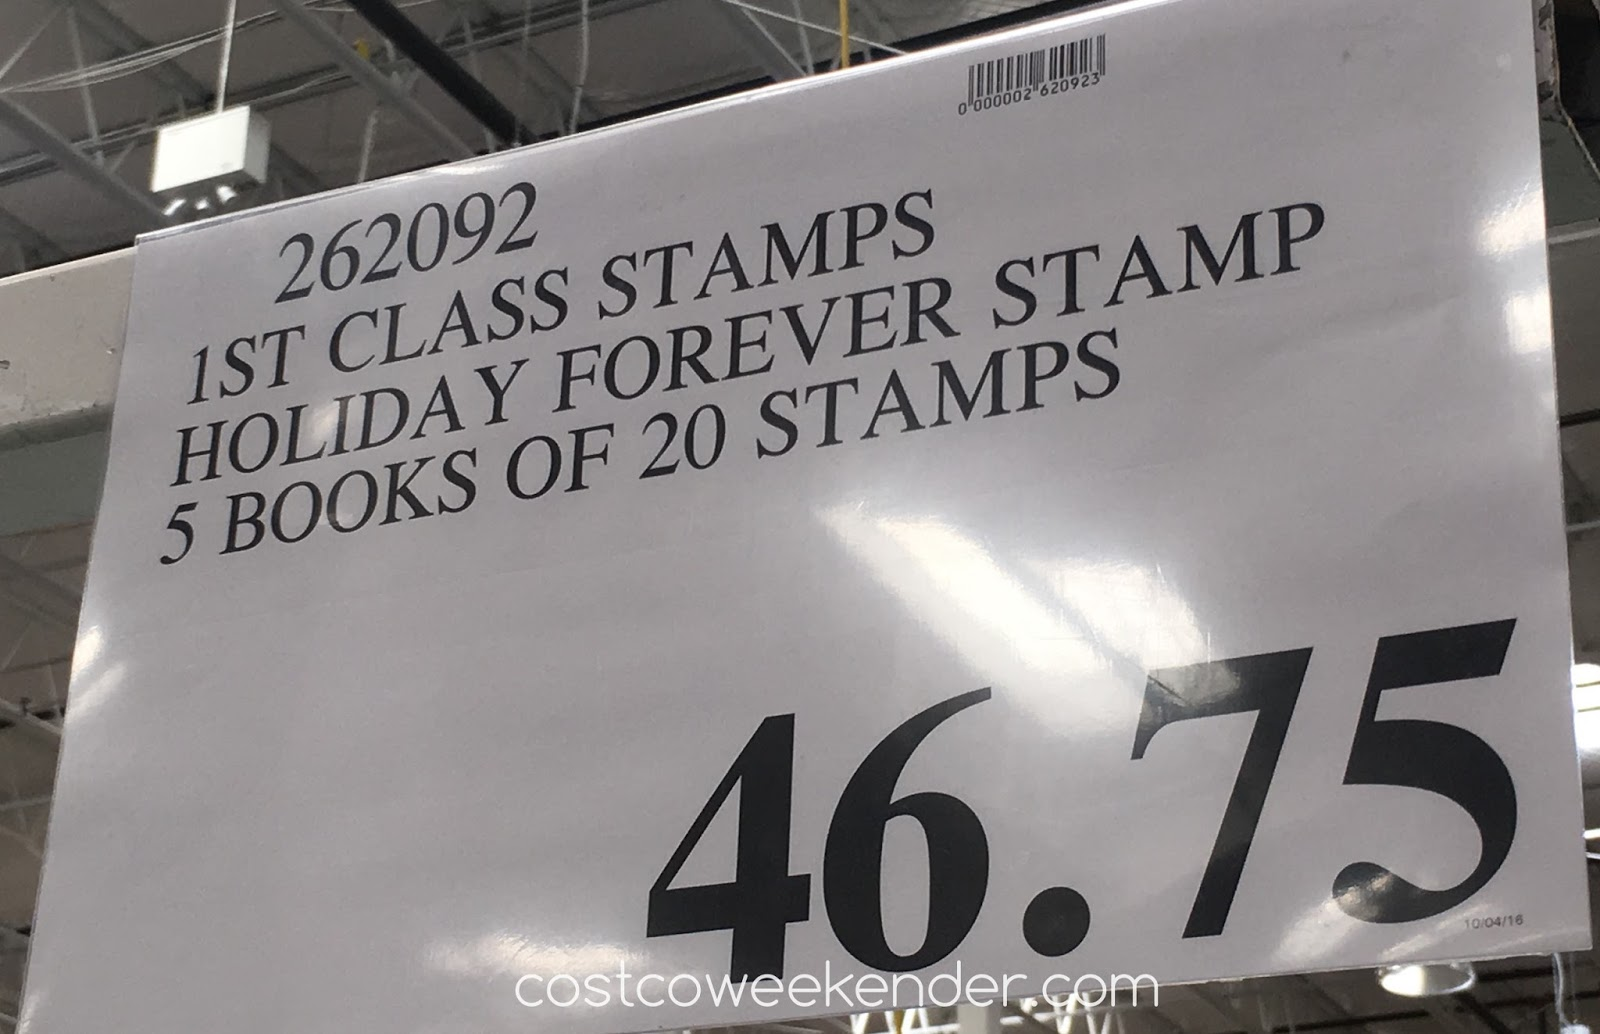 Costco 262092 - Deal for 5 booklets of 20 forever stamps at Costco